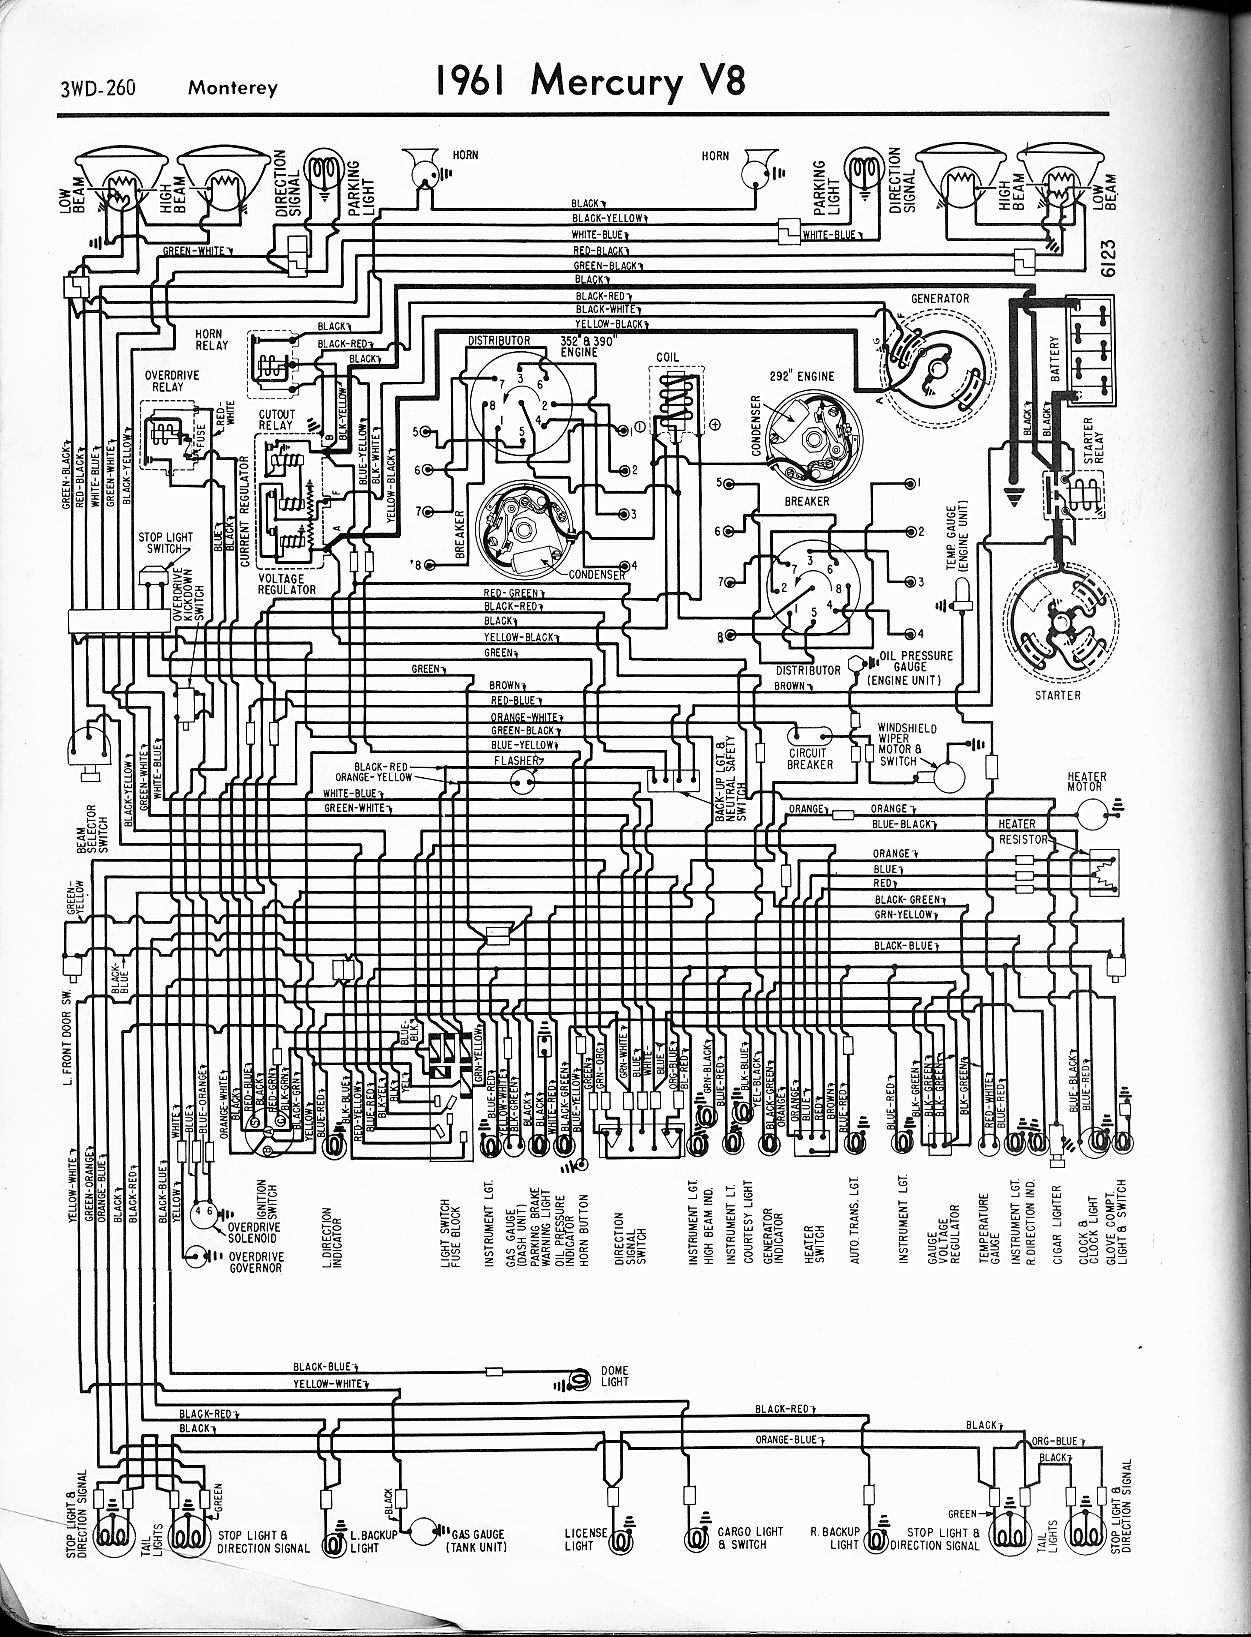 MWire5765 260 74 mercury comet wiring diagram on 74 download wirning diagrams  at soozxer.org